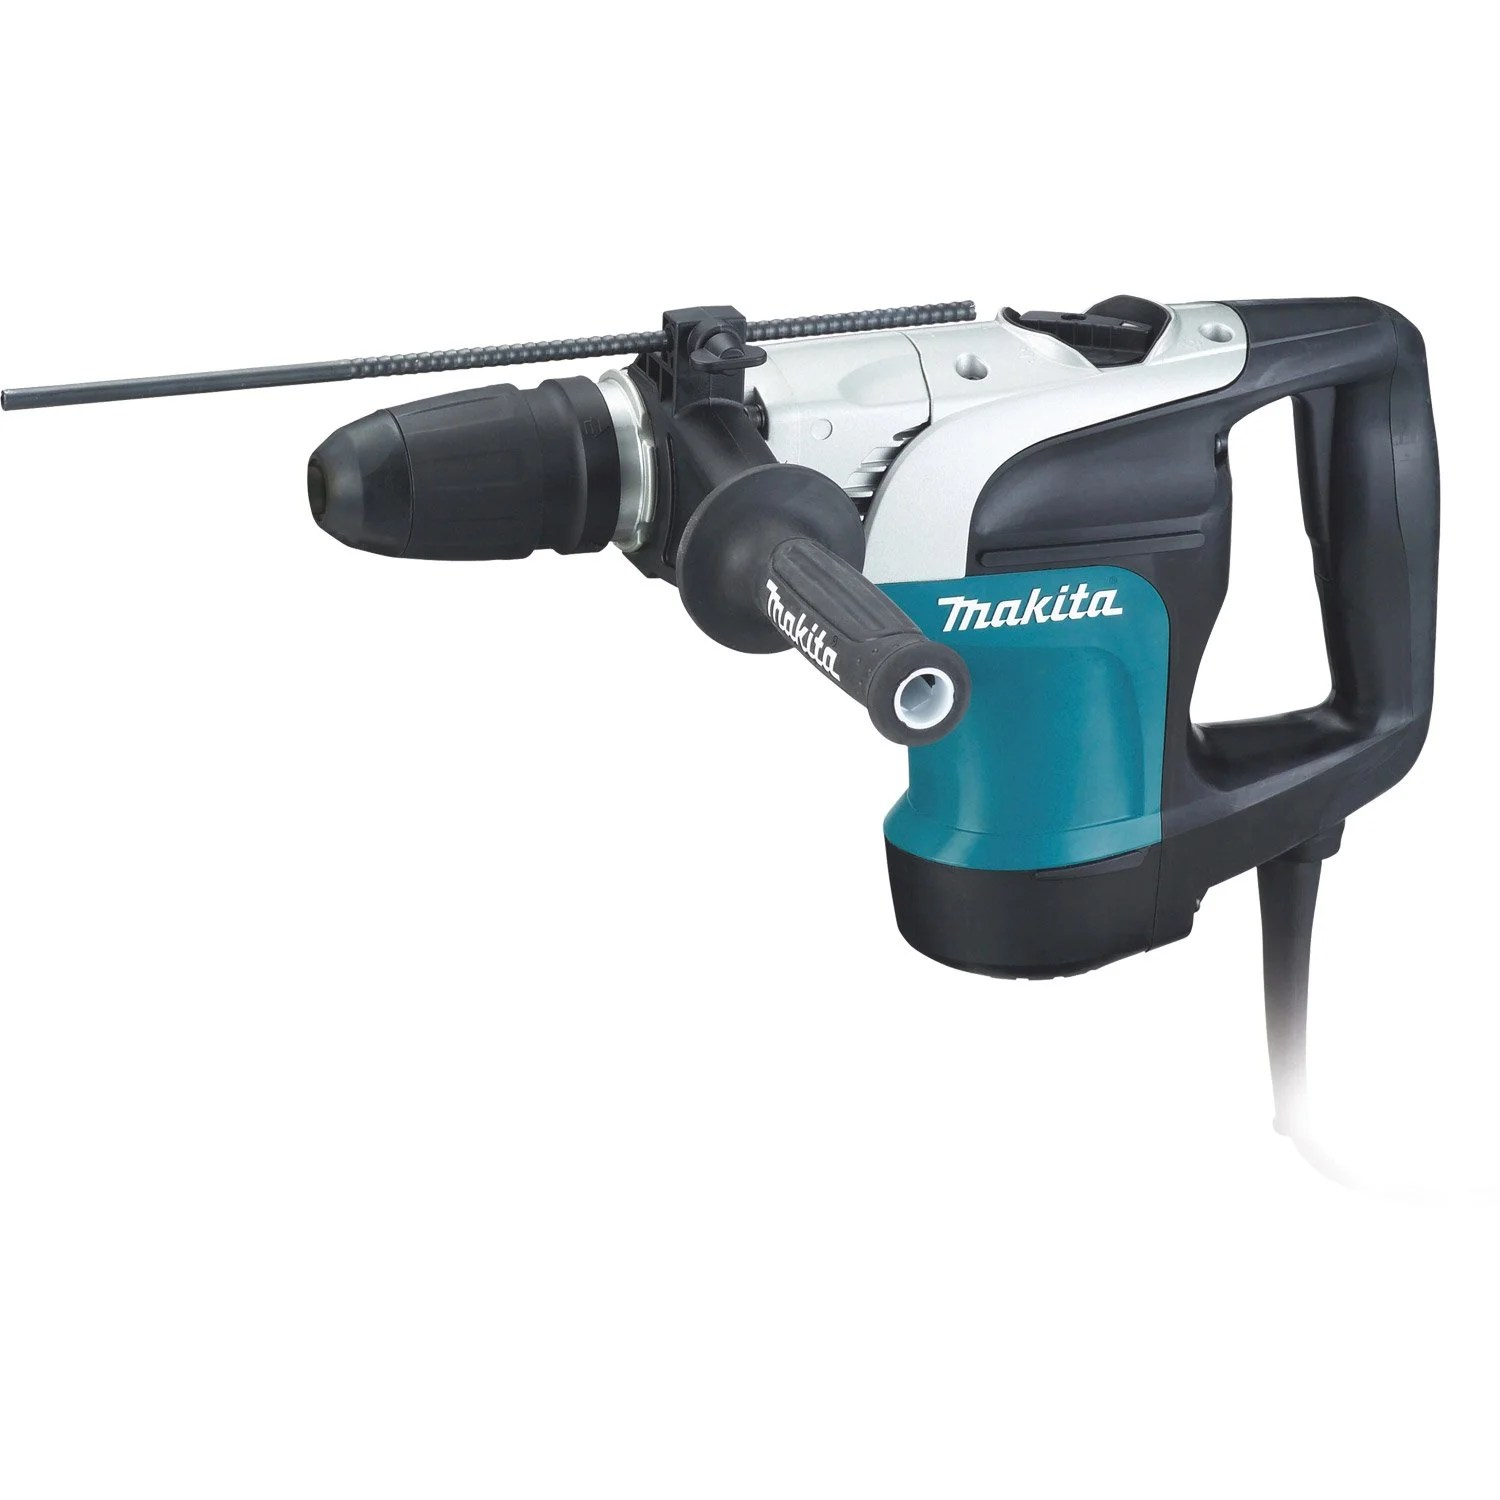 Perceuse Visseuse Leroy Merlin Perceuse Visseuse Perforateur 14 4v Uneo Bosch Leroy Merlin